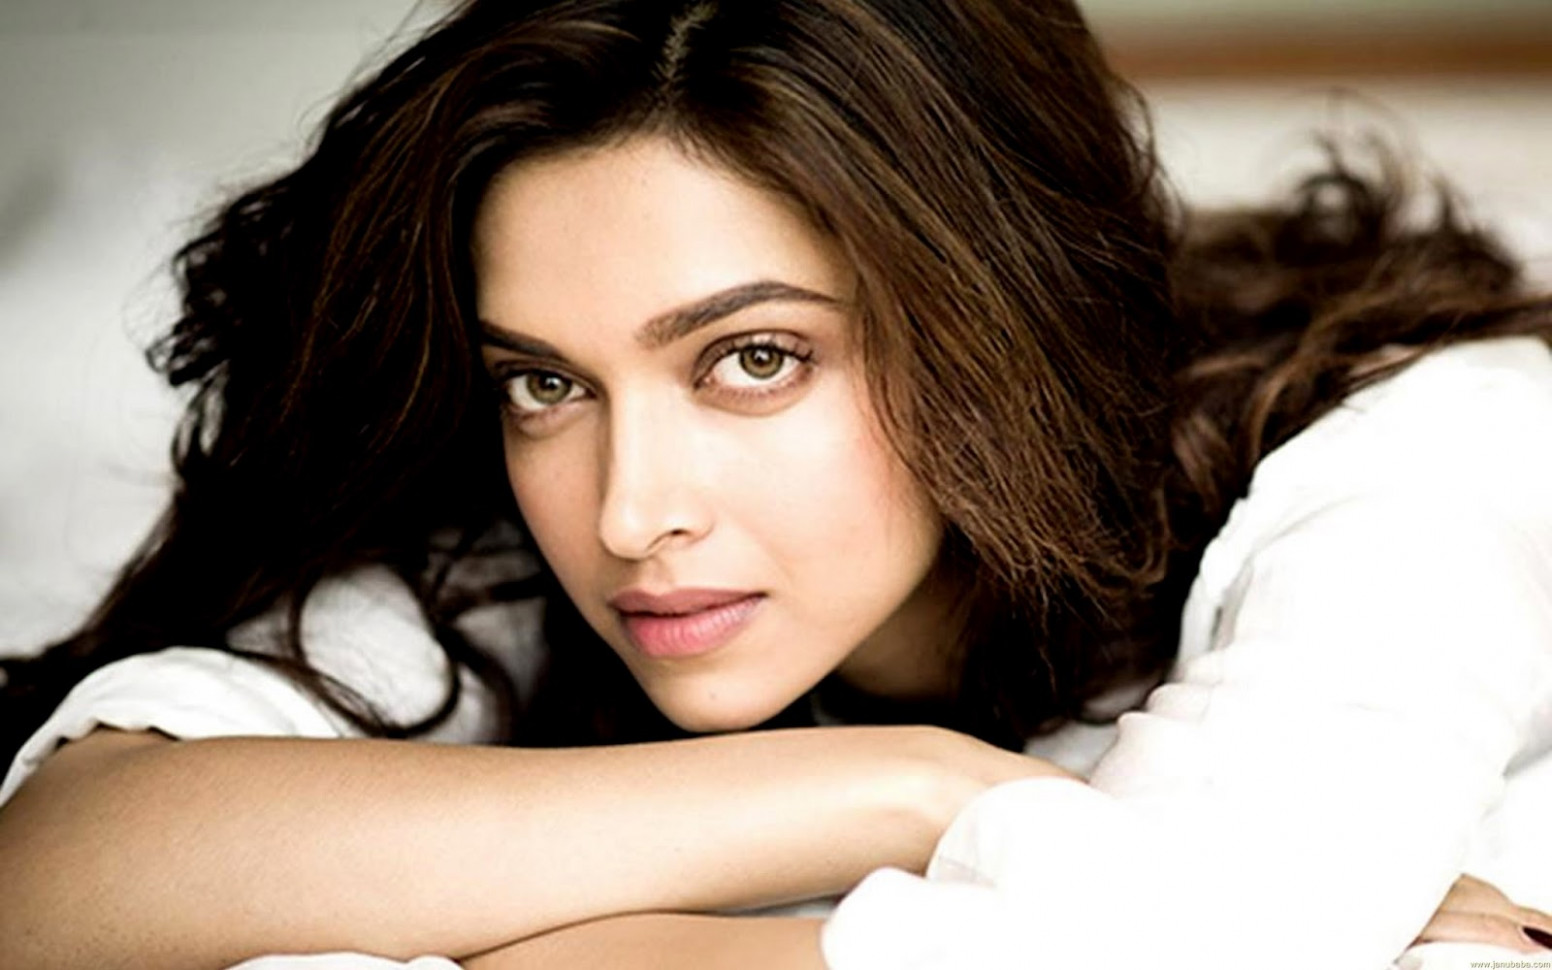 Top 10 Best Deepika Padukone Wallpapers - Download HD ...